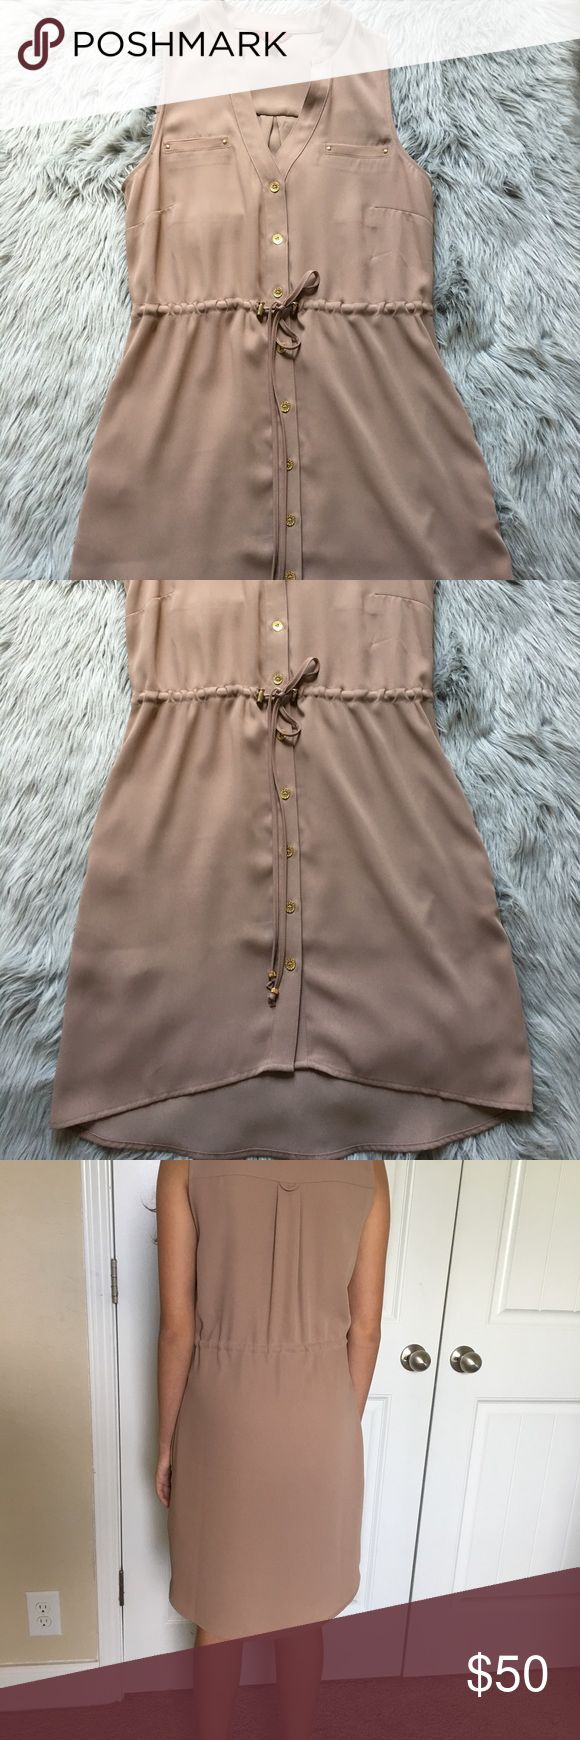 Guess dress Nude Dress from Guess! Worn only once. Size XS Guess Dresses